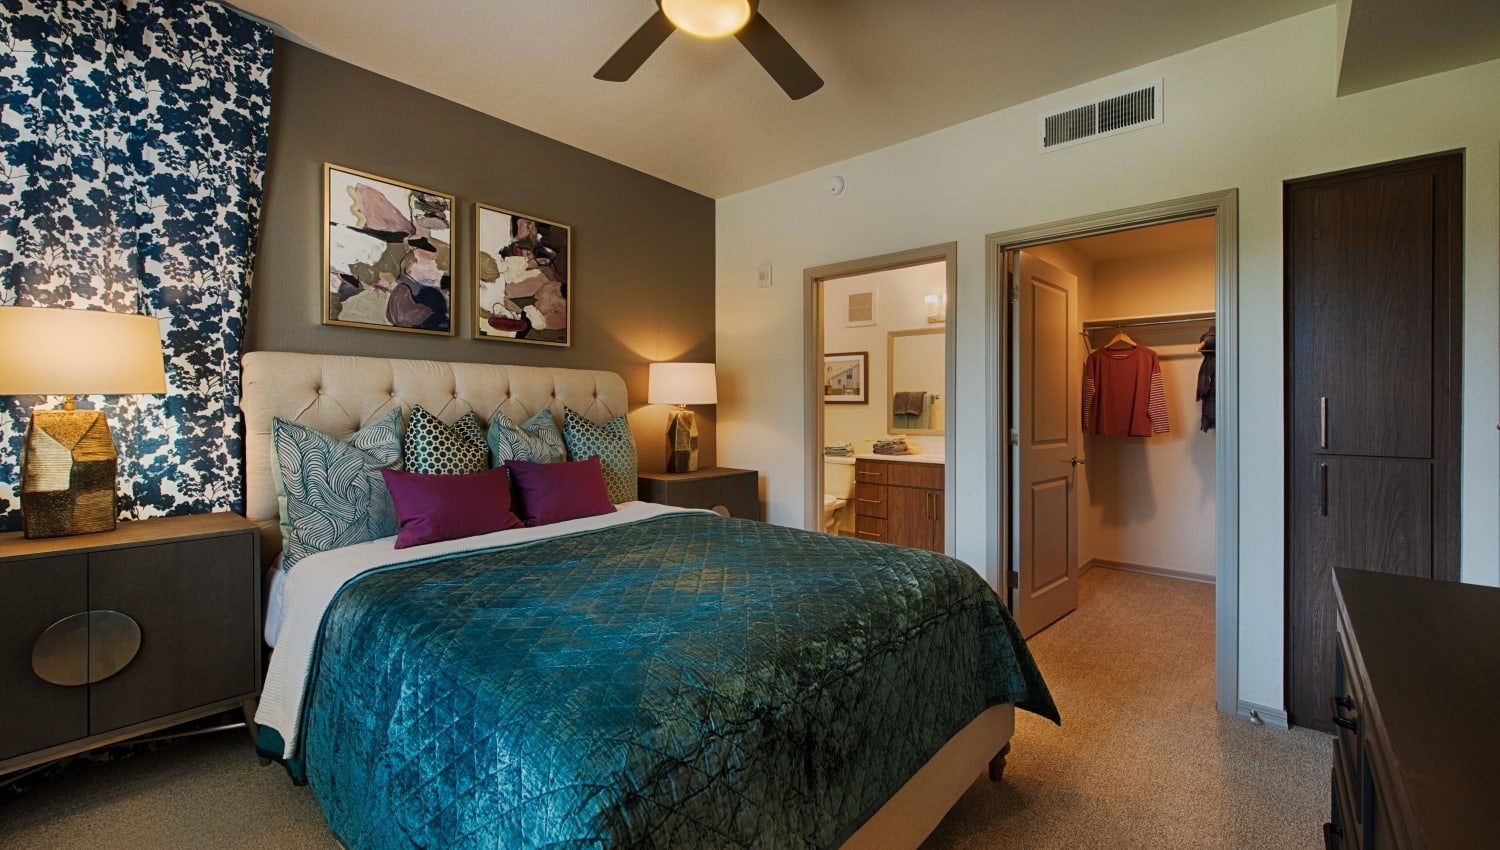 Bedroom at Ocio Plaza Del Rio in Peoria, Arizona